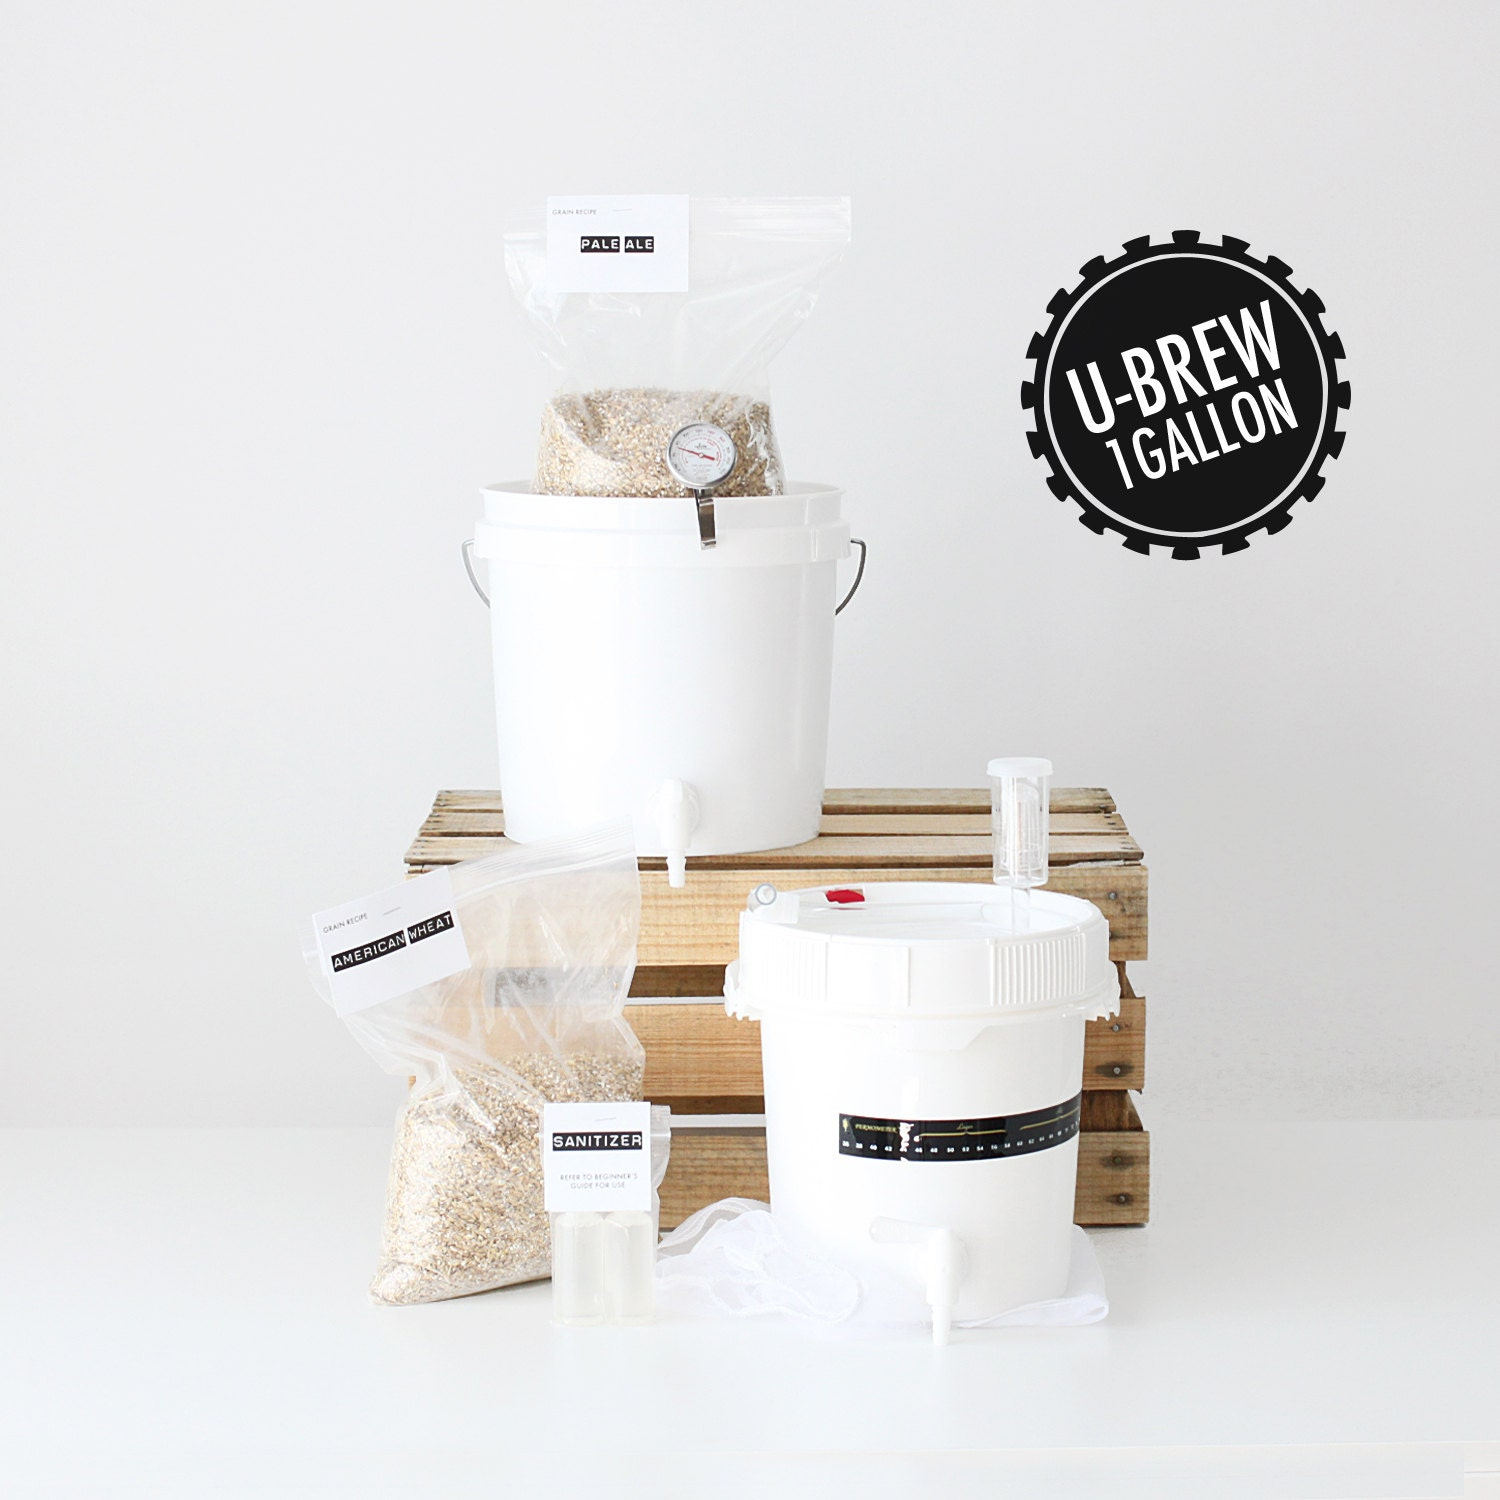 ubrew kit 1 gallon beer making kit with 2 grain by. Black Bedroom Furniture Sets. Home Design Ideas